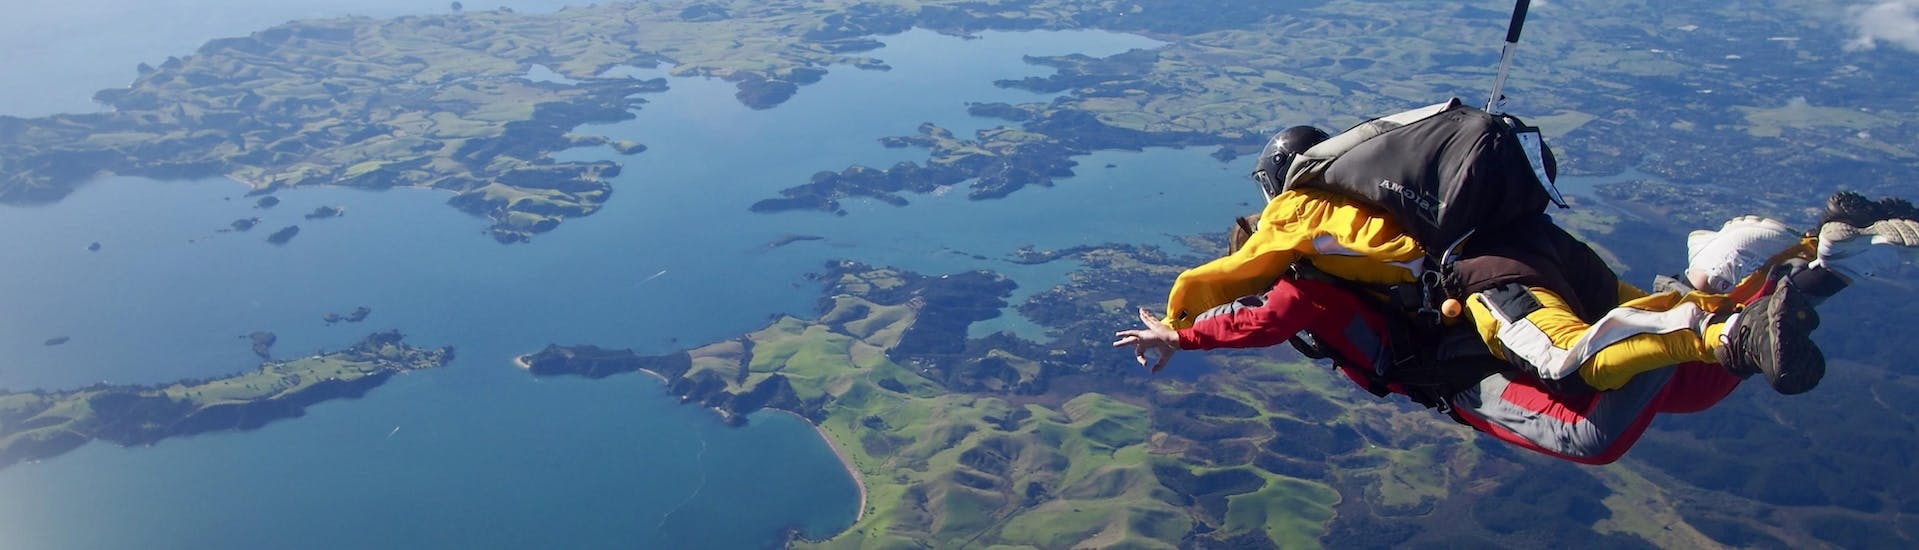 A participant of the skydive organized by Skydive Bay of Islands is living the time of her life in Bay of Islands.